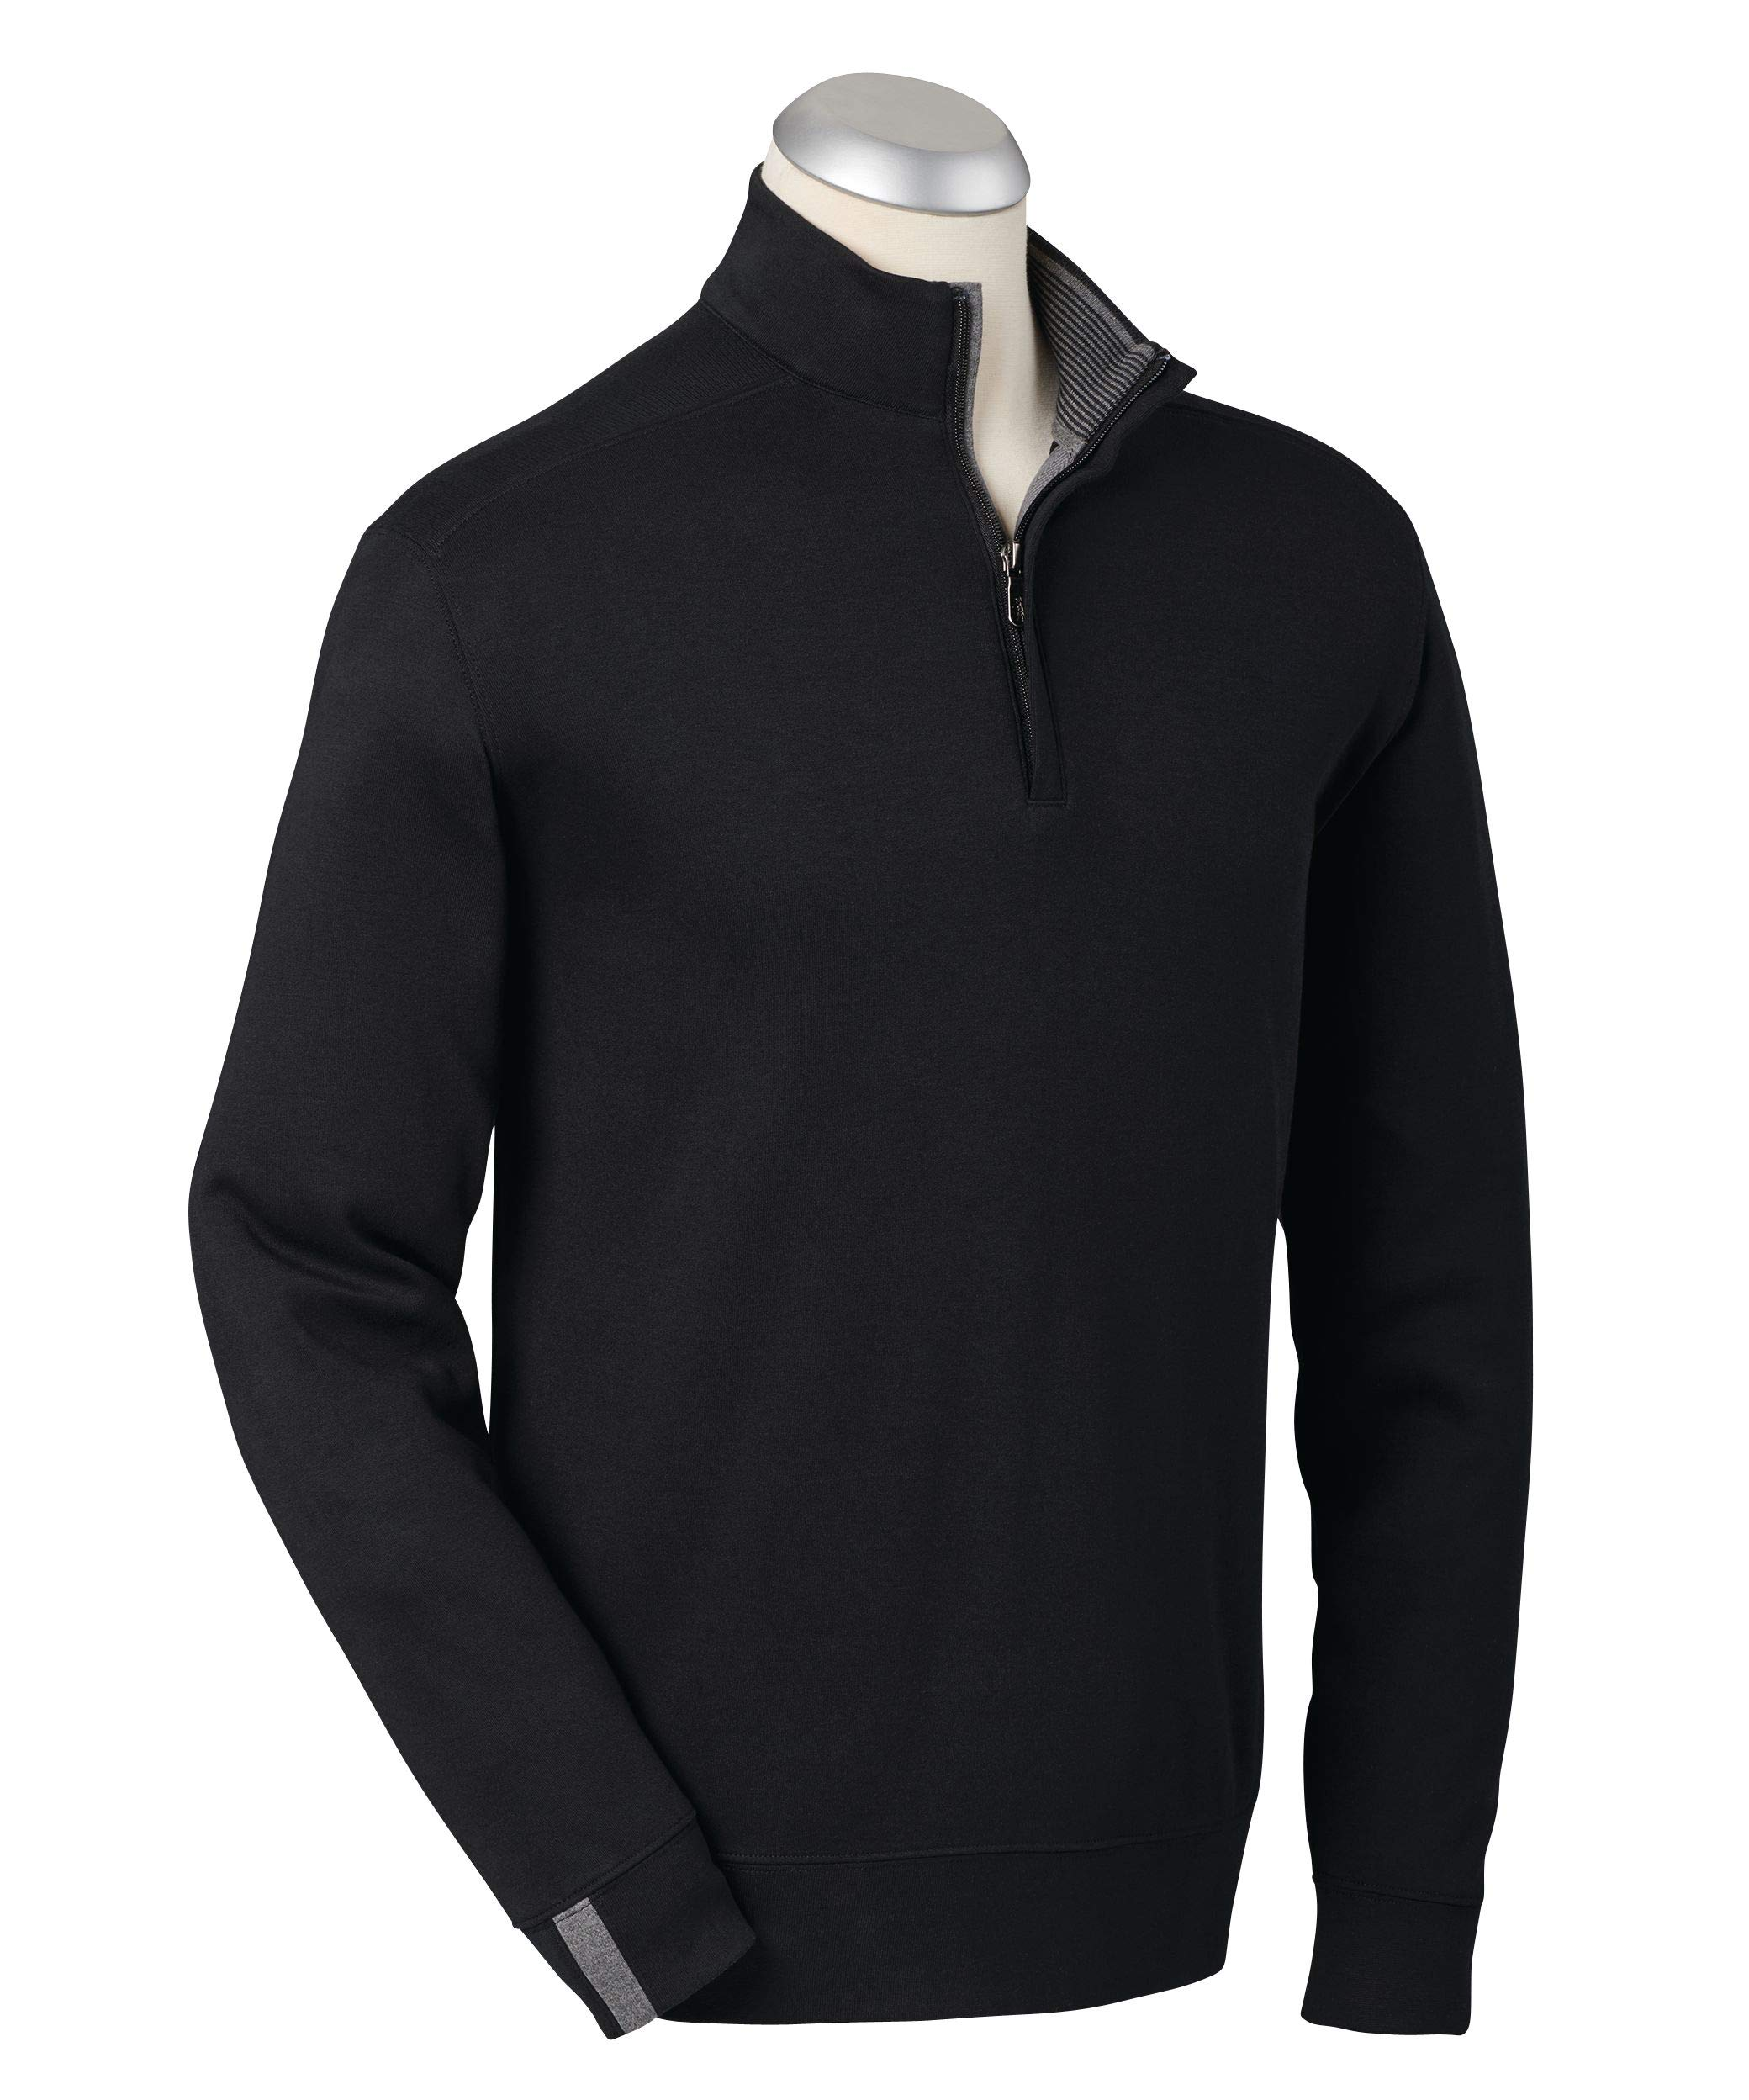 Bobby Jones Lux Pima Leaderboard Golf Pullover - Men's 1/4 Zip Pullover Golf Apparel Black by Bobby Jones